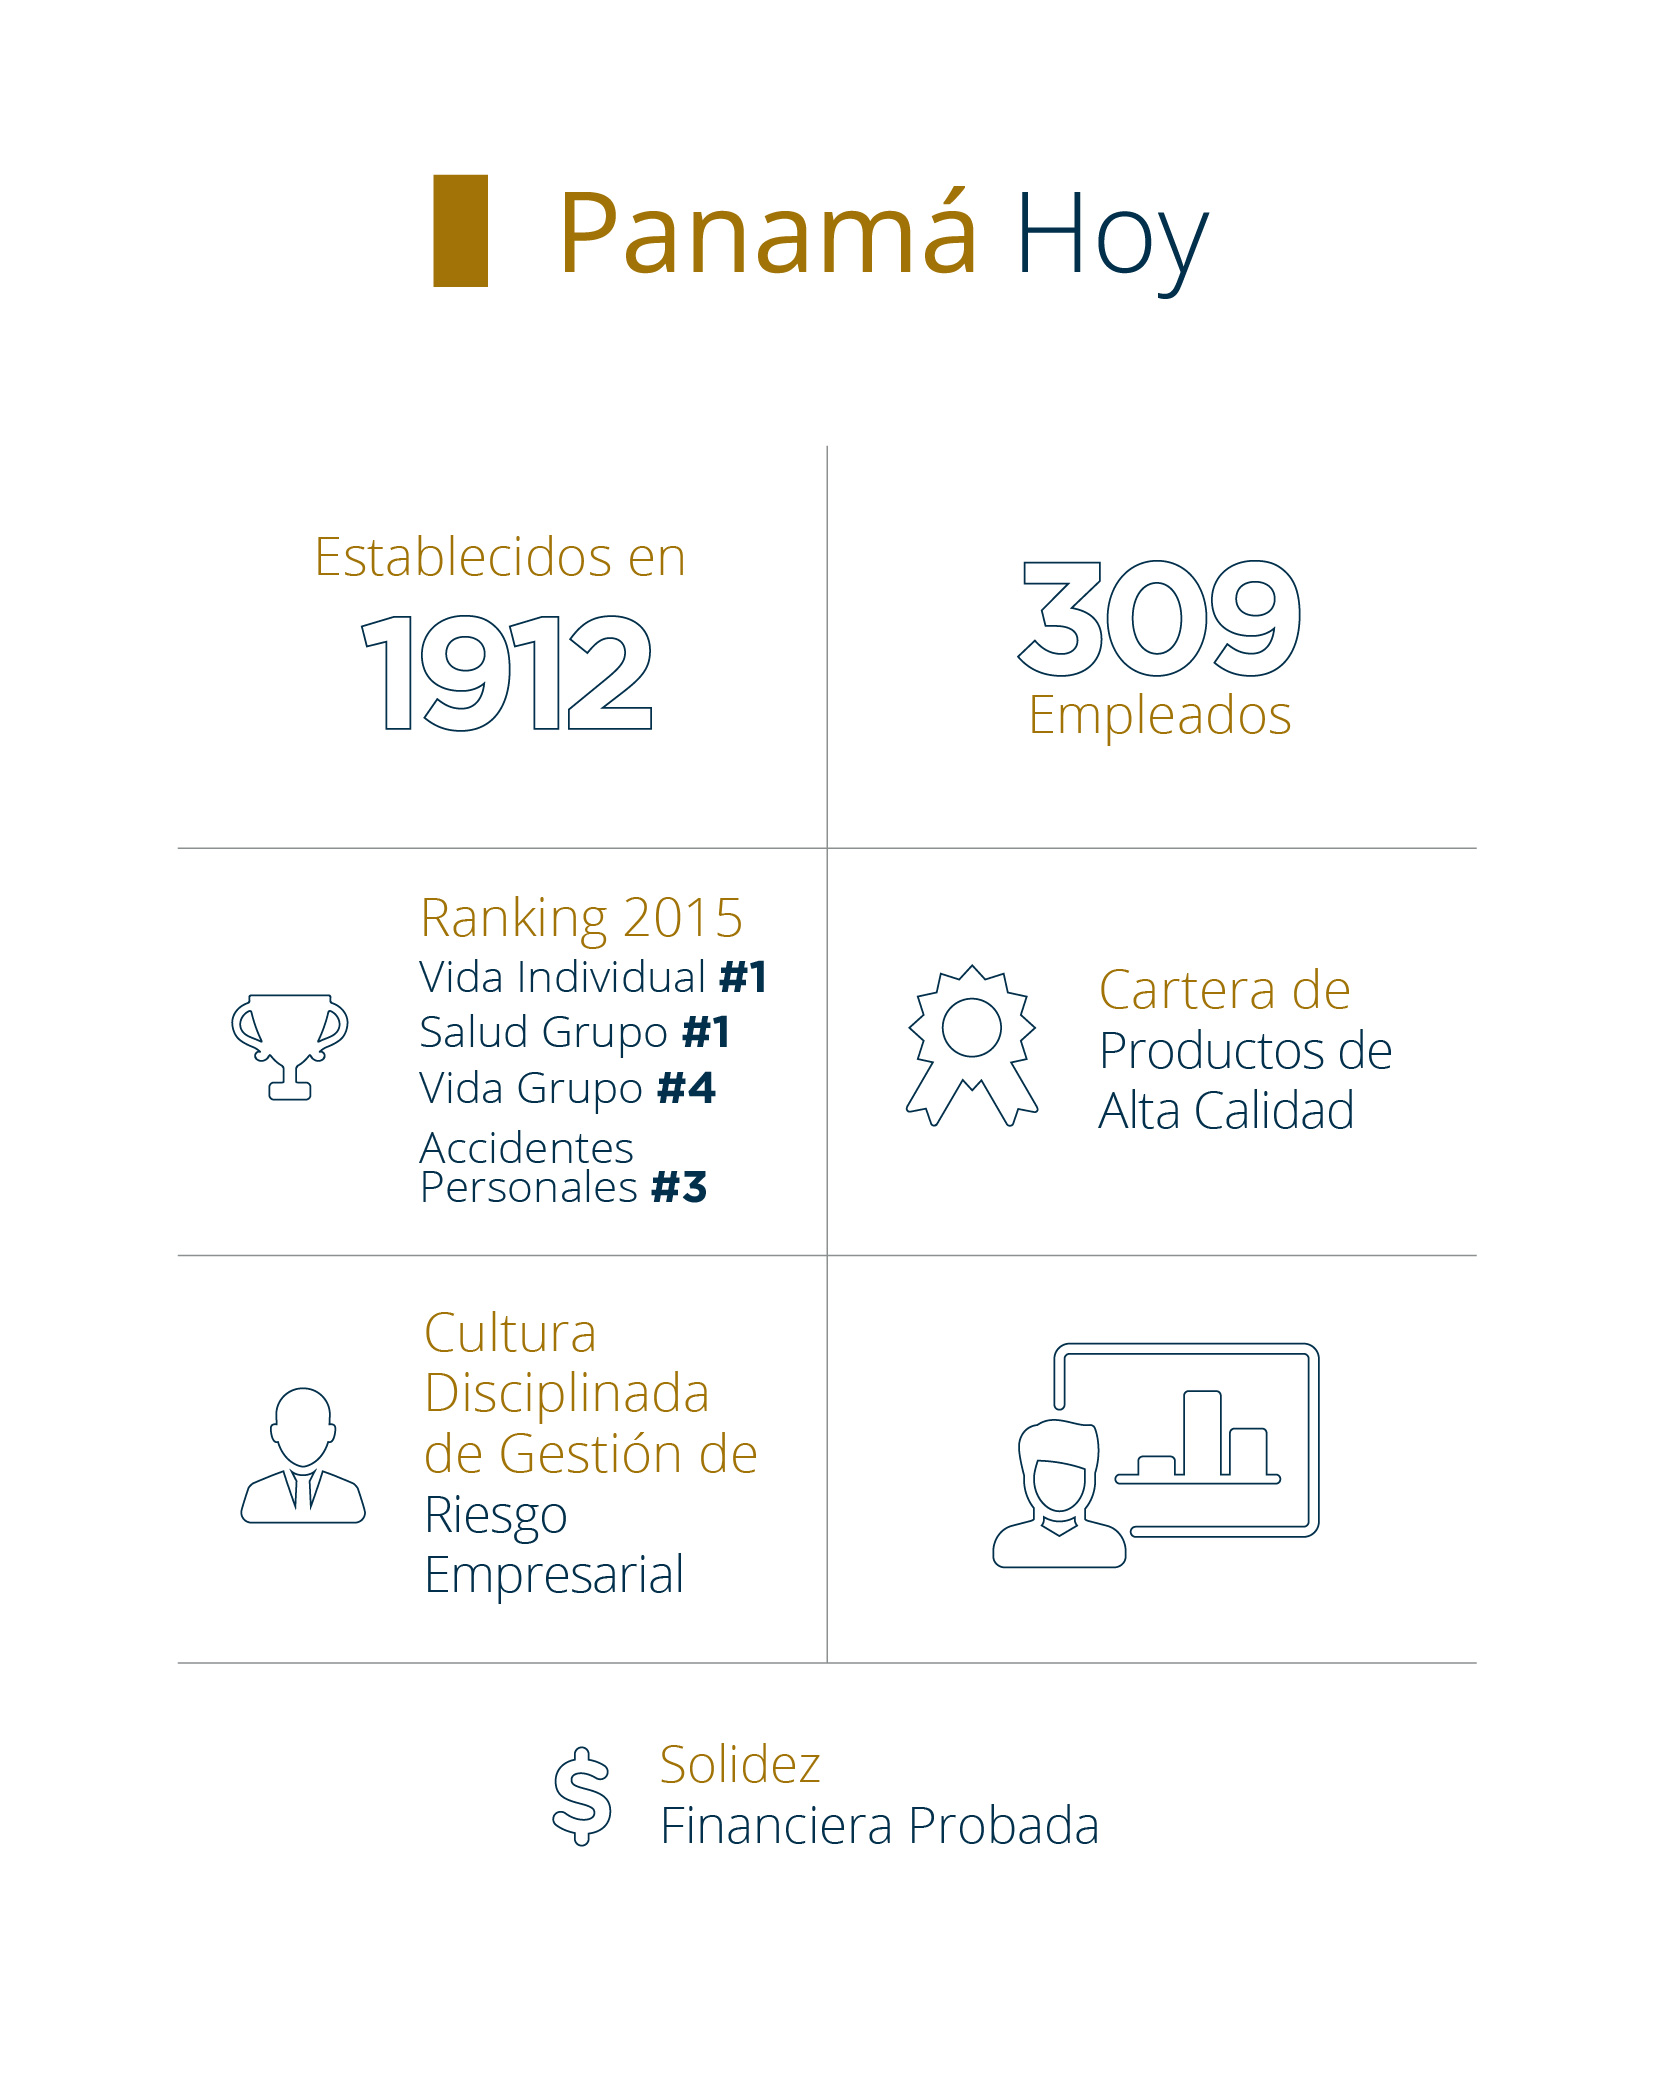 Sobre Pan-American Life Insurance Group de Panama